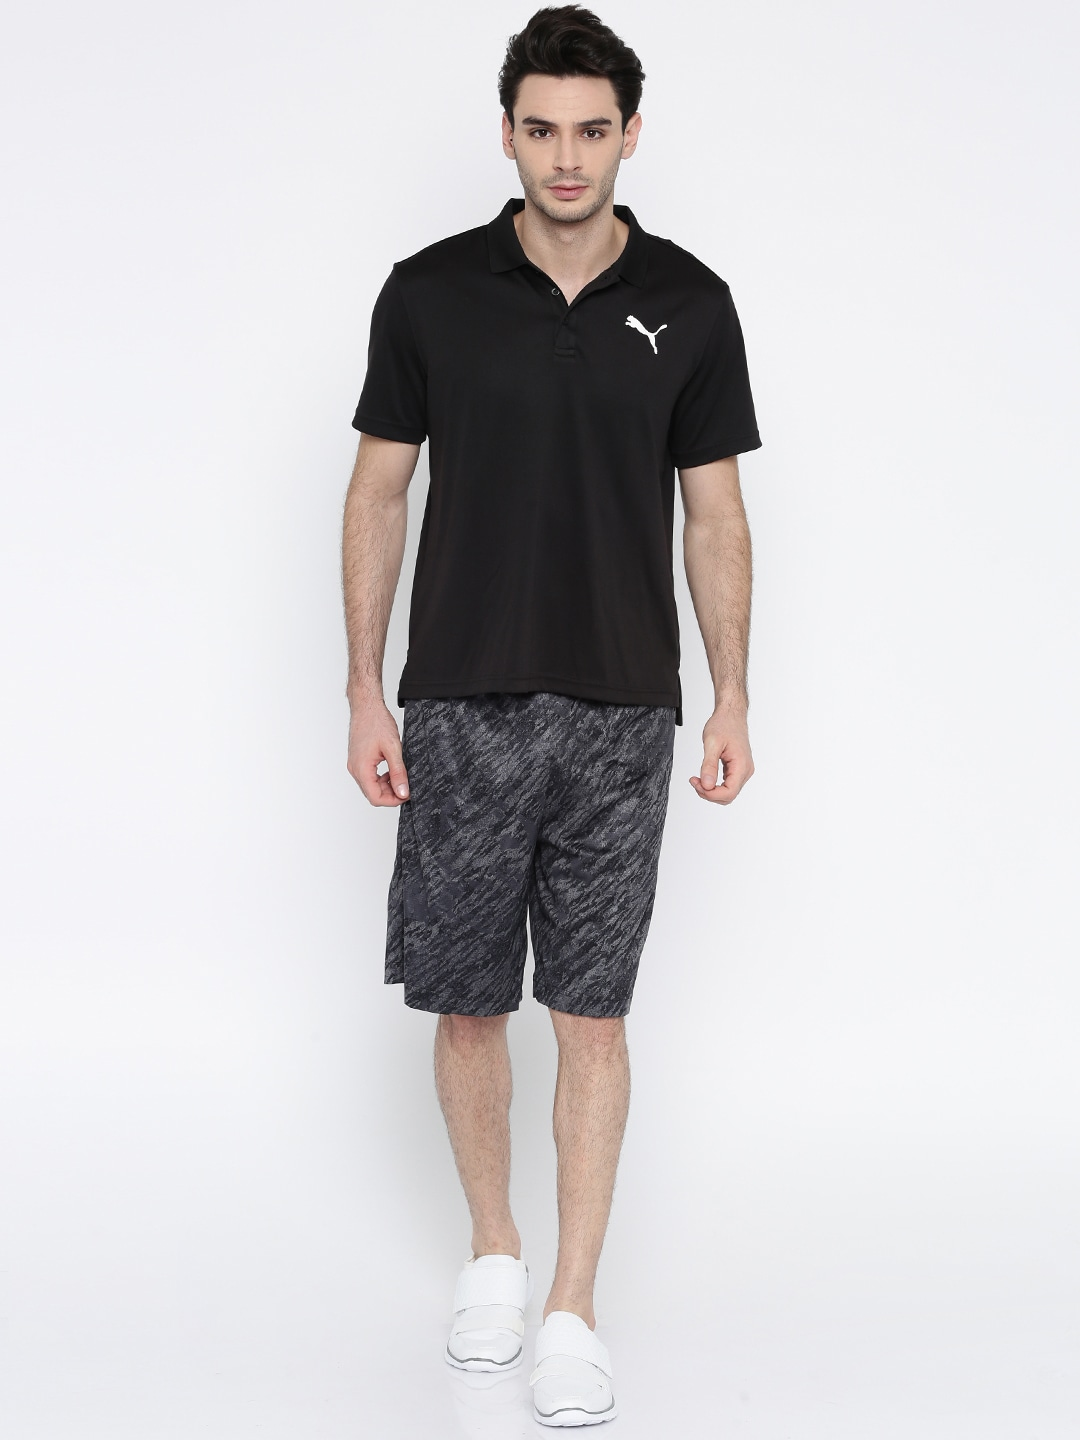 Puma Shorts - Buy Puma Shorts Online in India